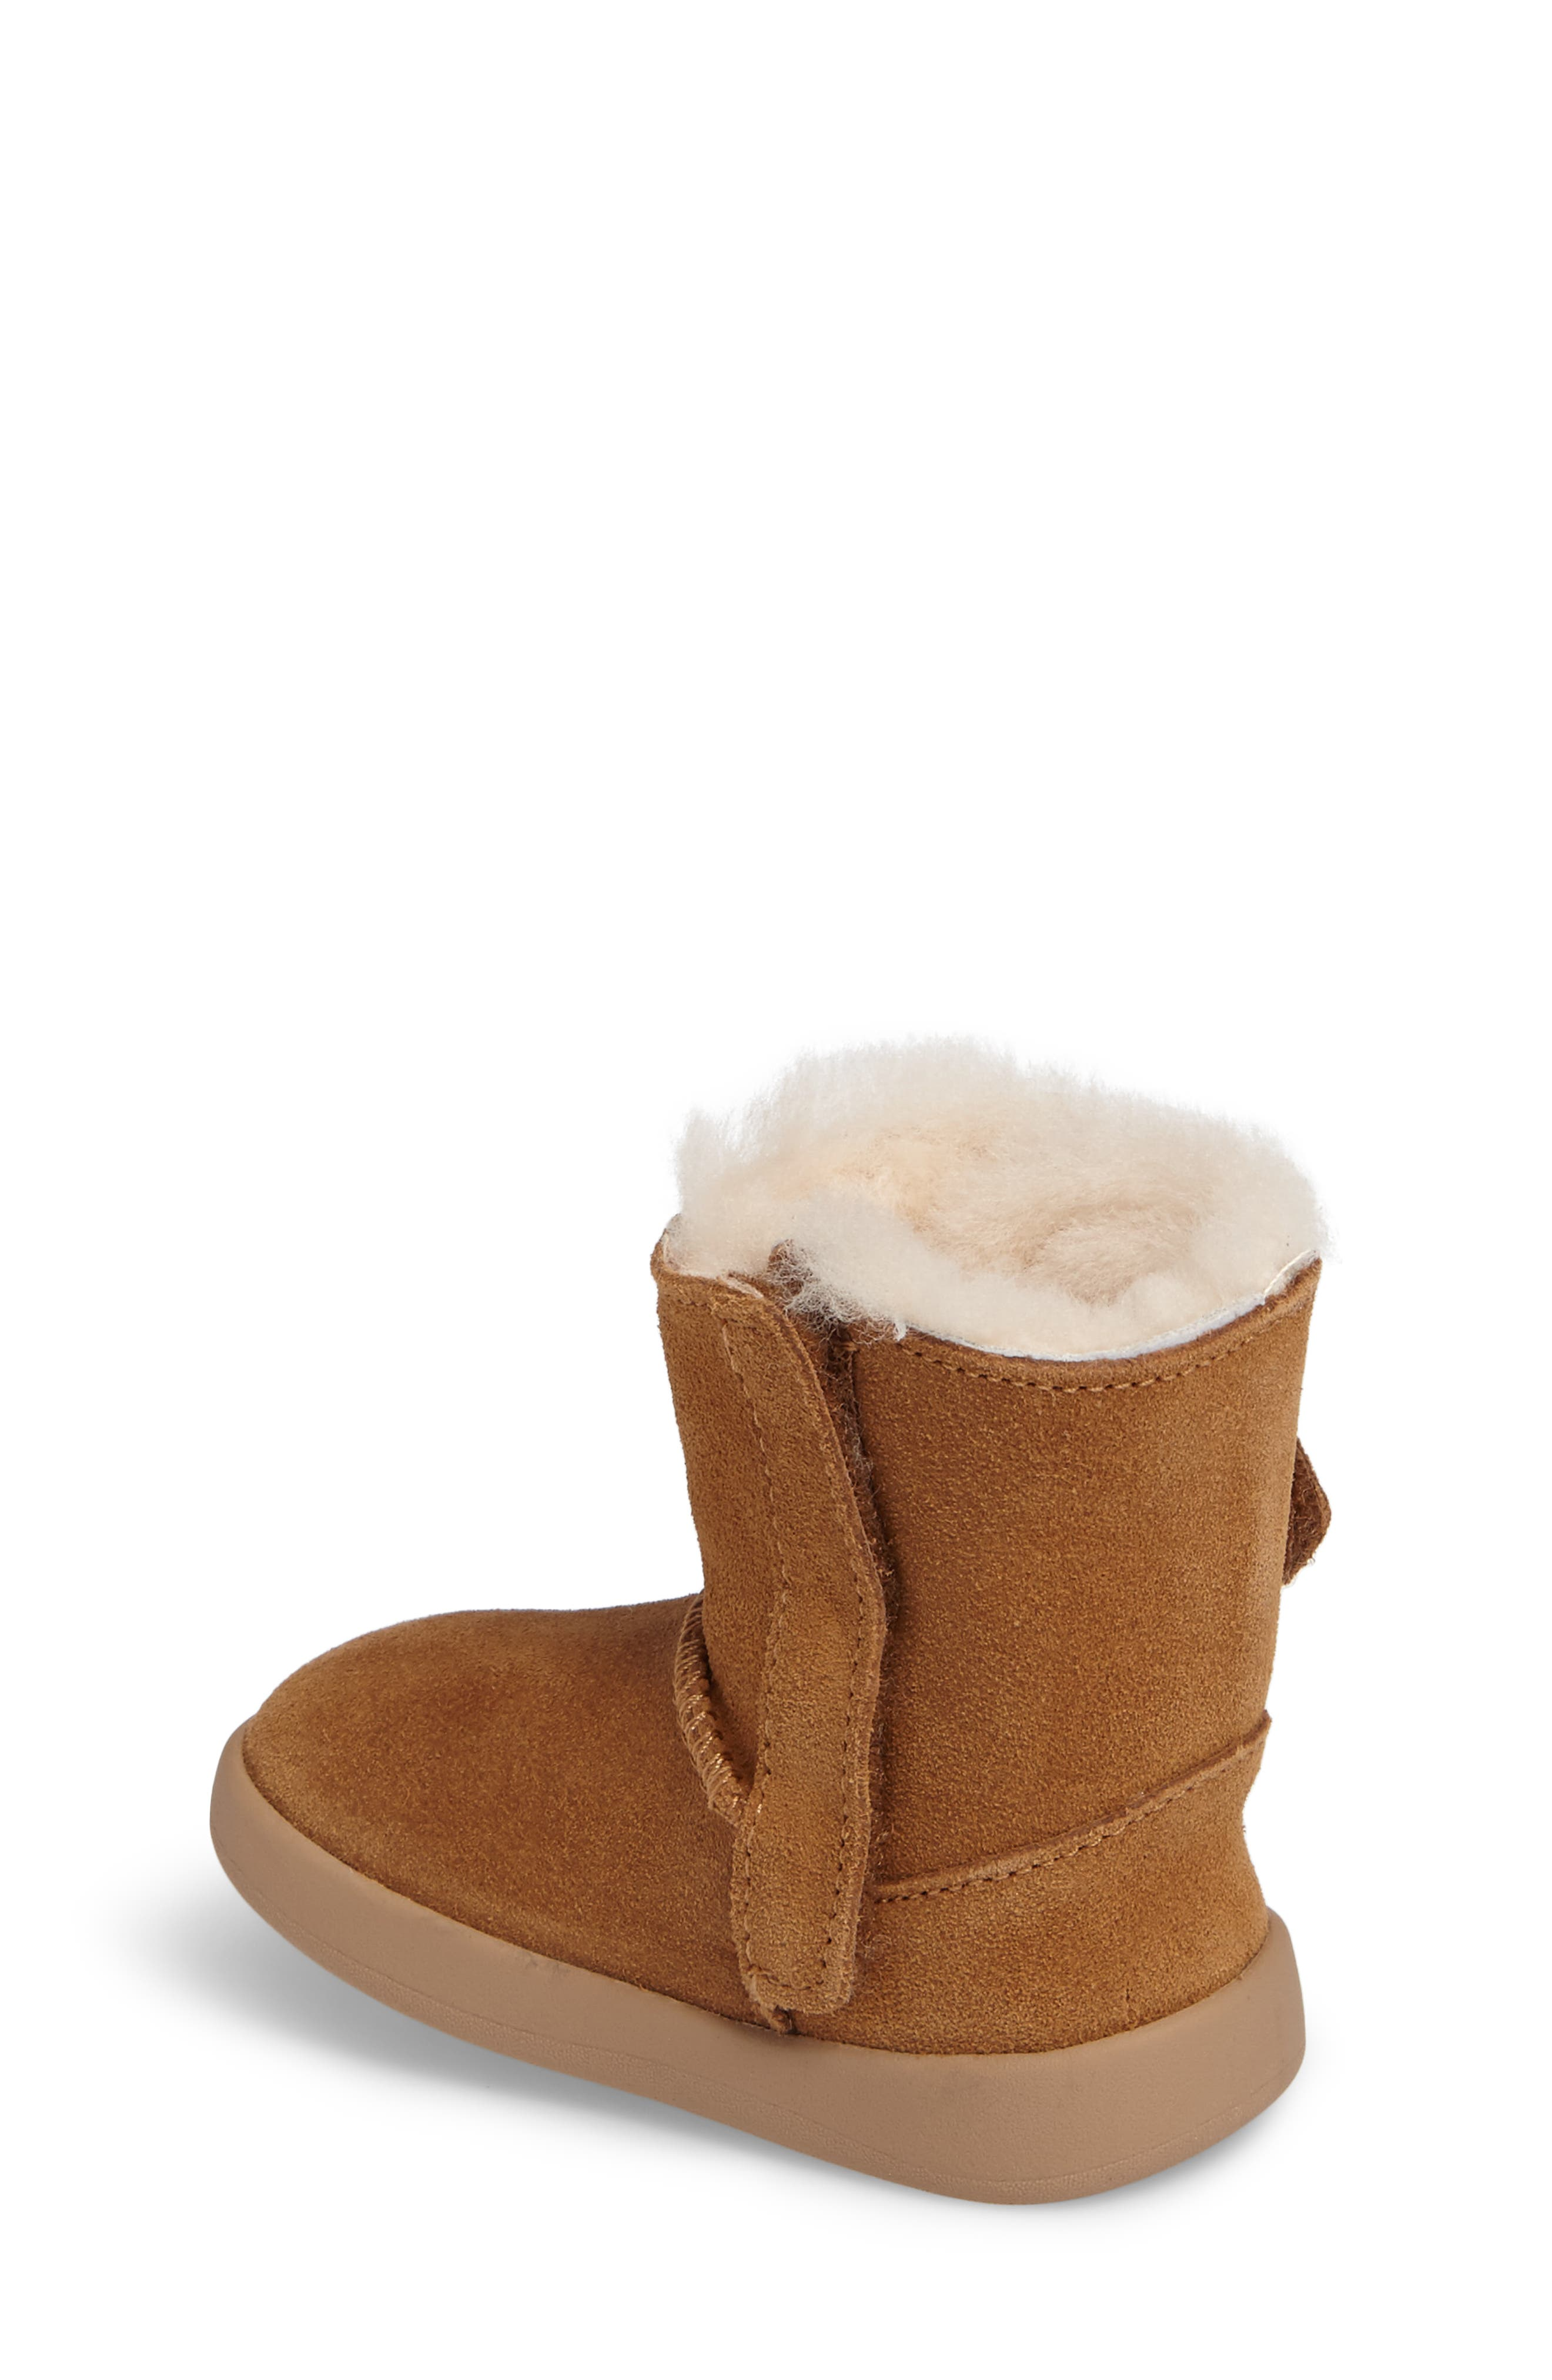 Keelan Genuine Shearling Baby Bootie,                             Alternate thumbnail 2, color,                             Chestnut Brown